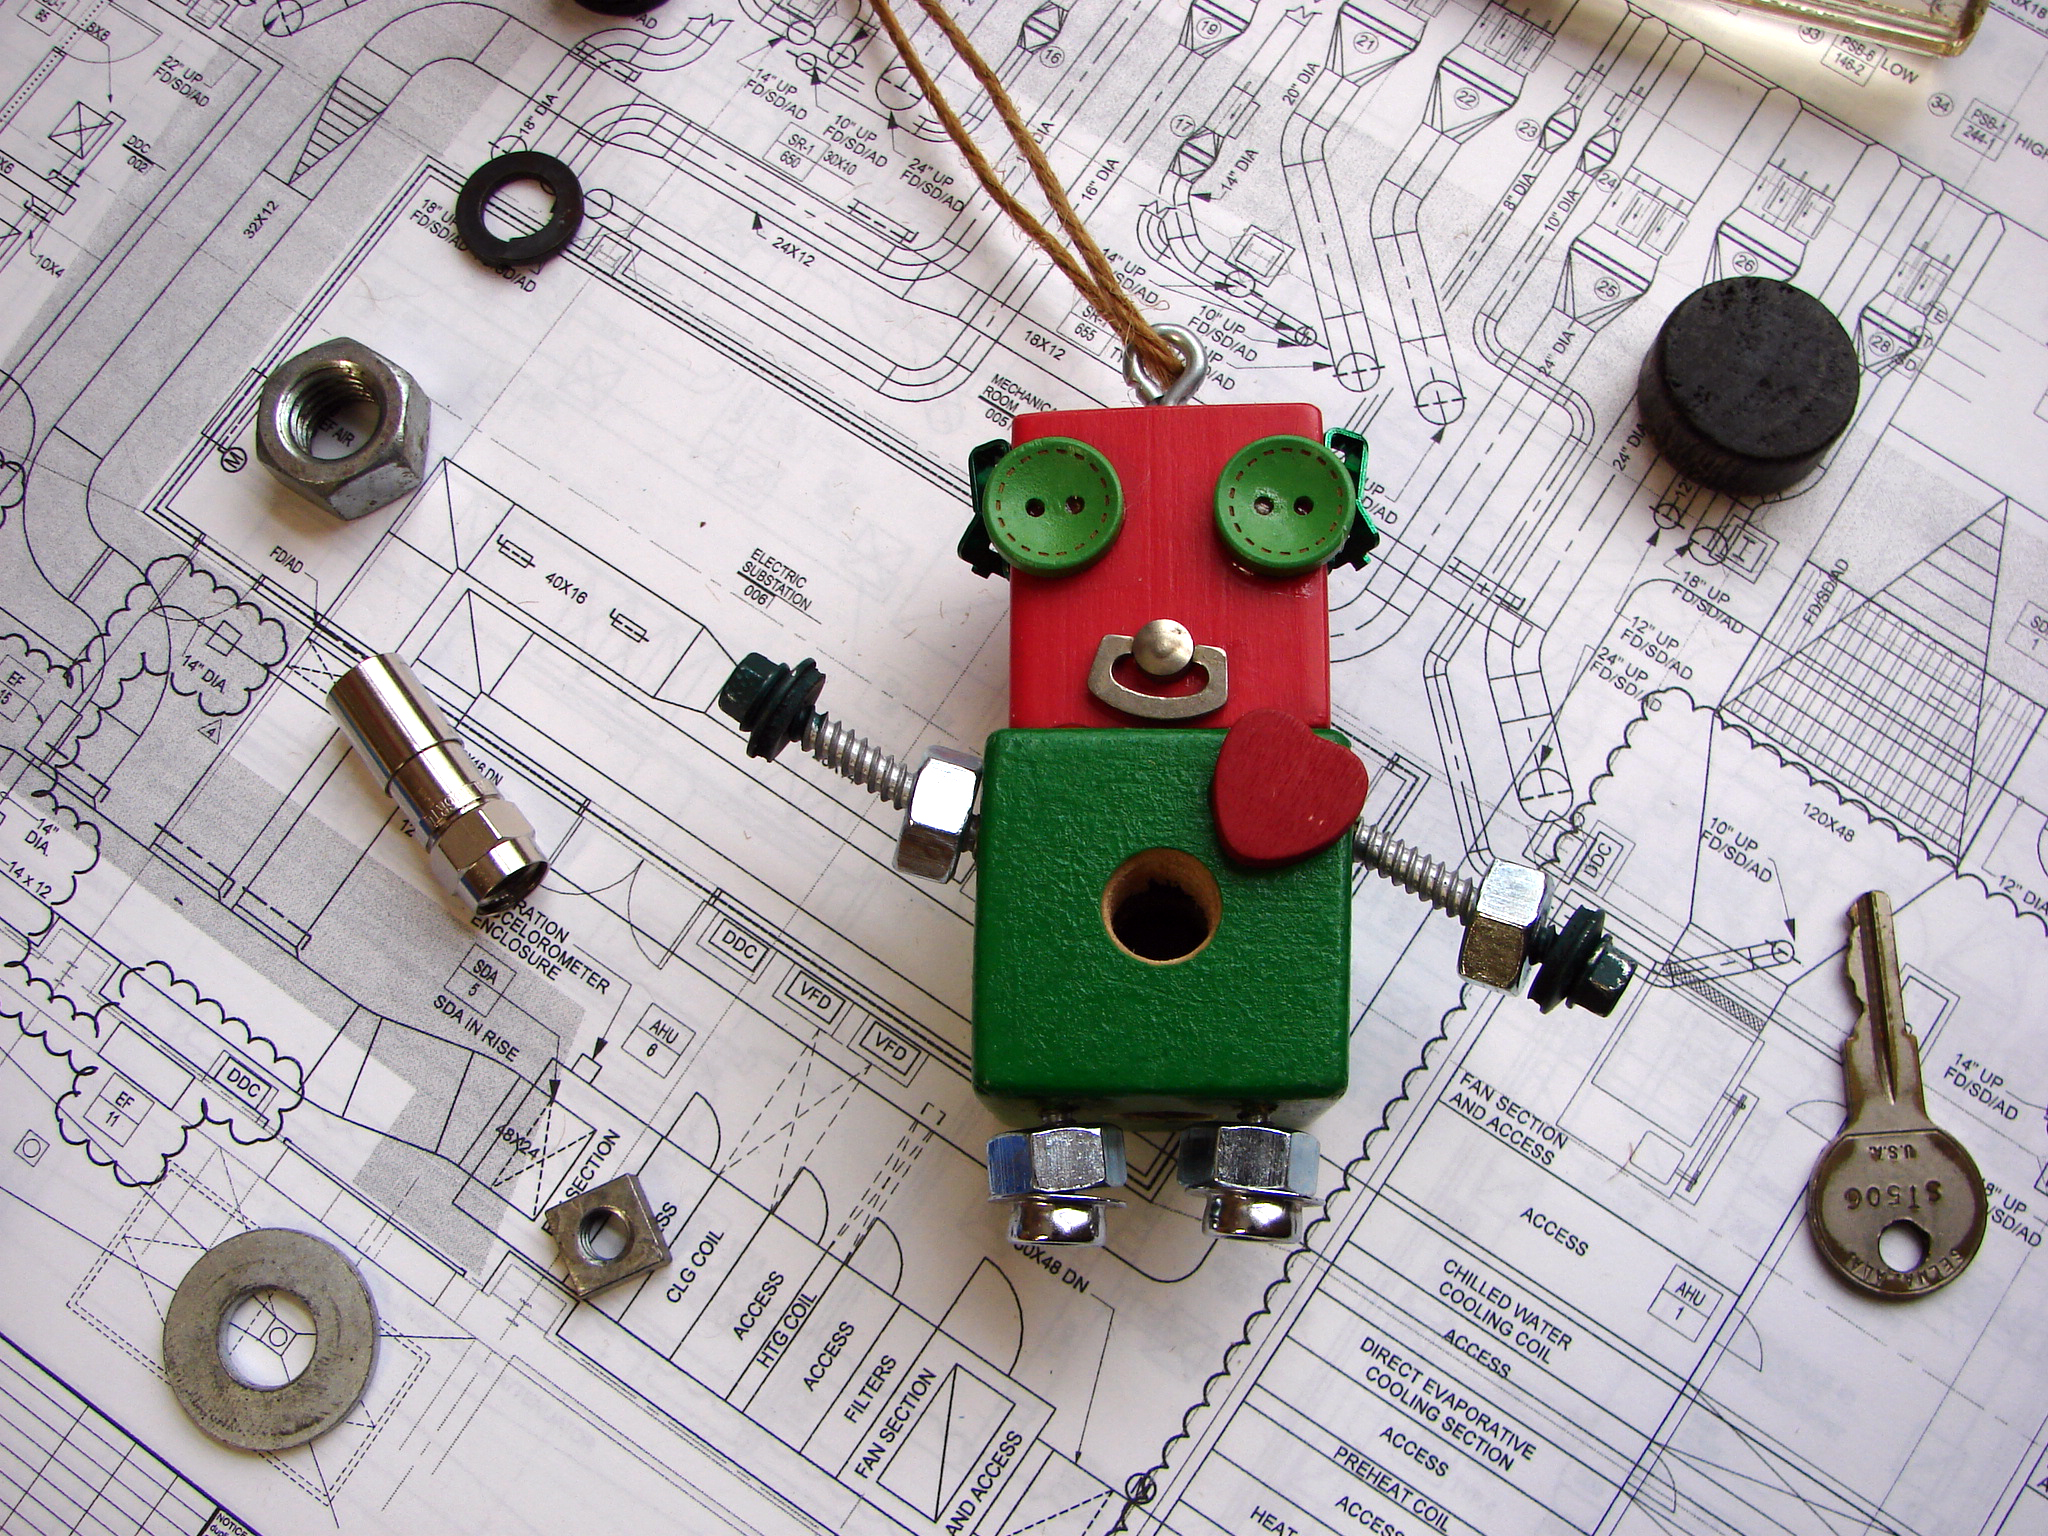 Red and Green Robot Ornament by Trilby Works